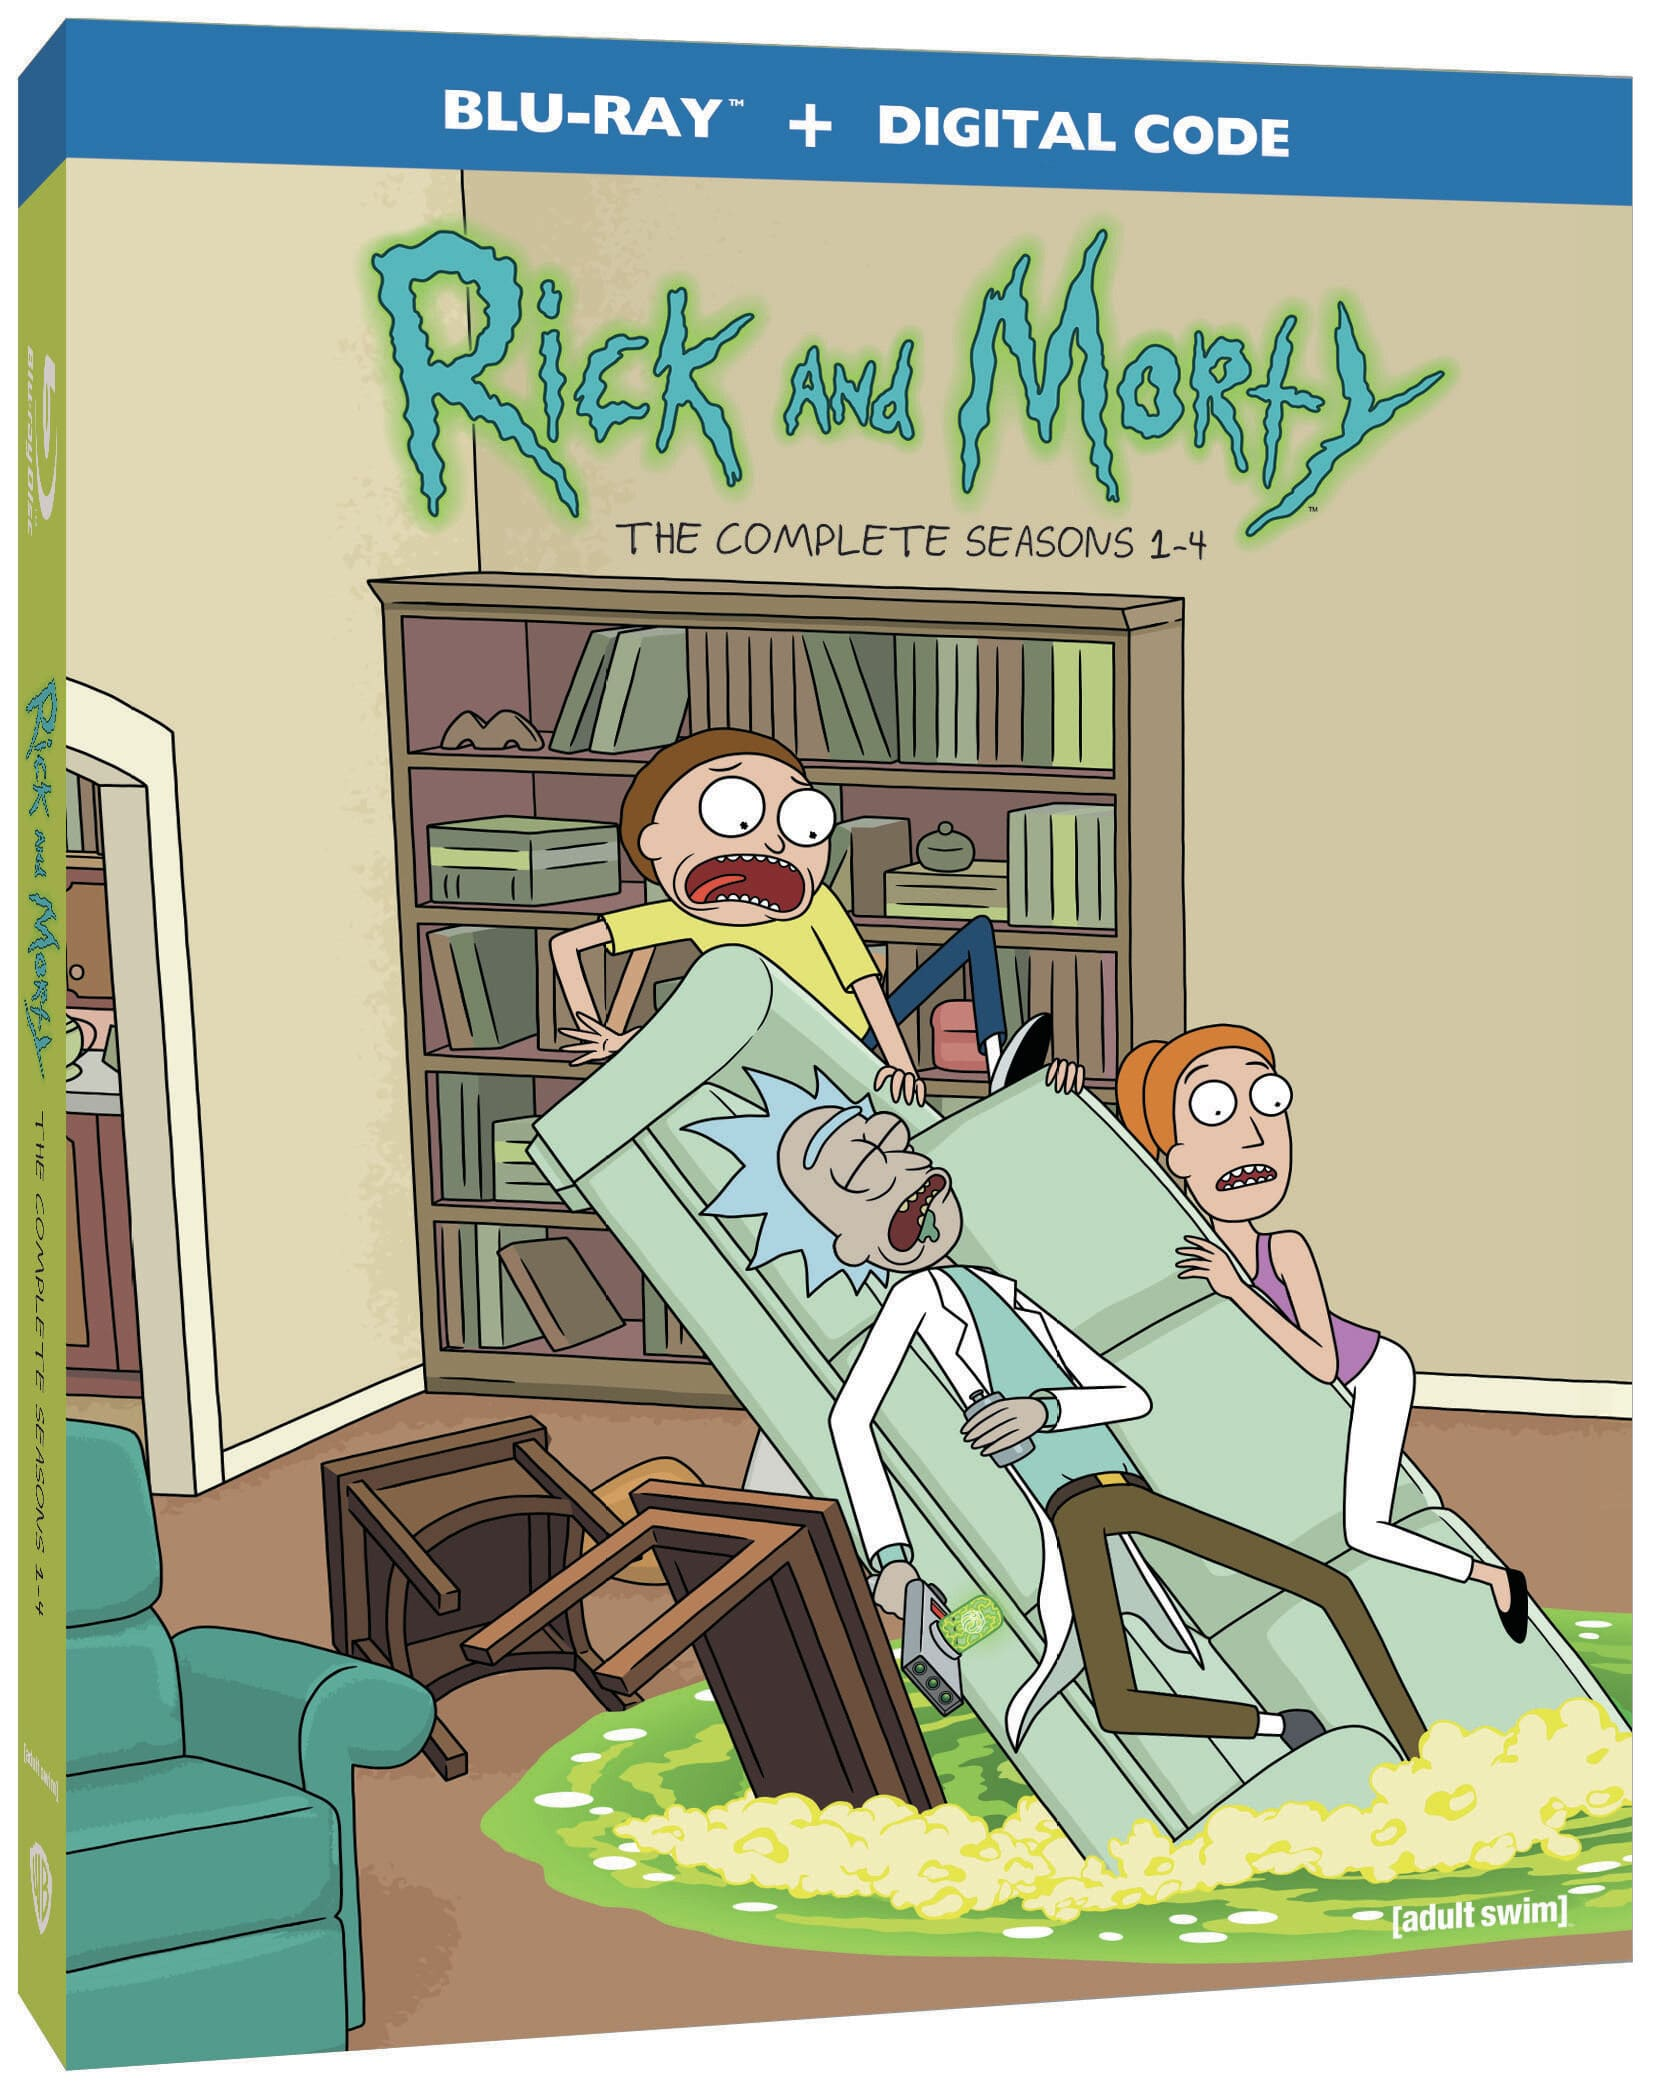 RICK MORTY S1 4 1000797621 BD DGTL SC 3D FINAL DOM SKEW b20967c1